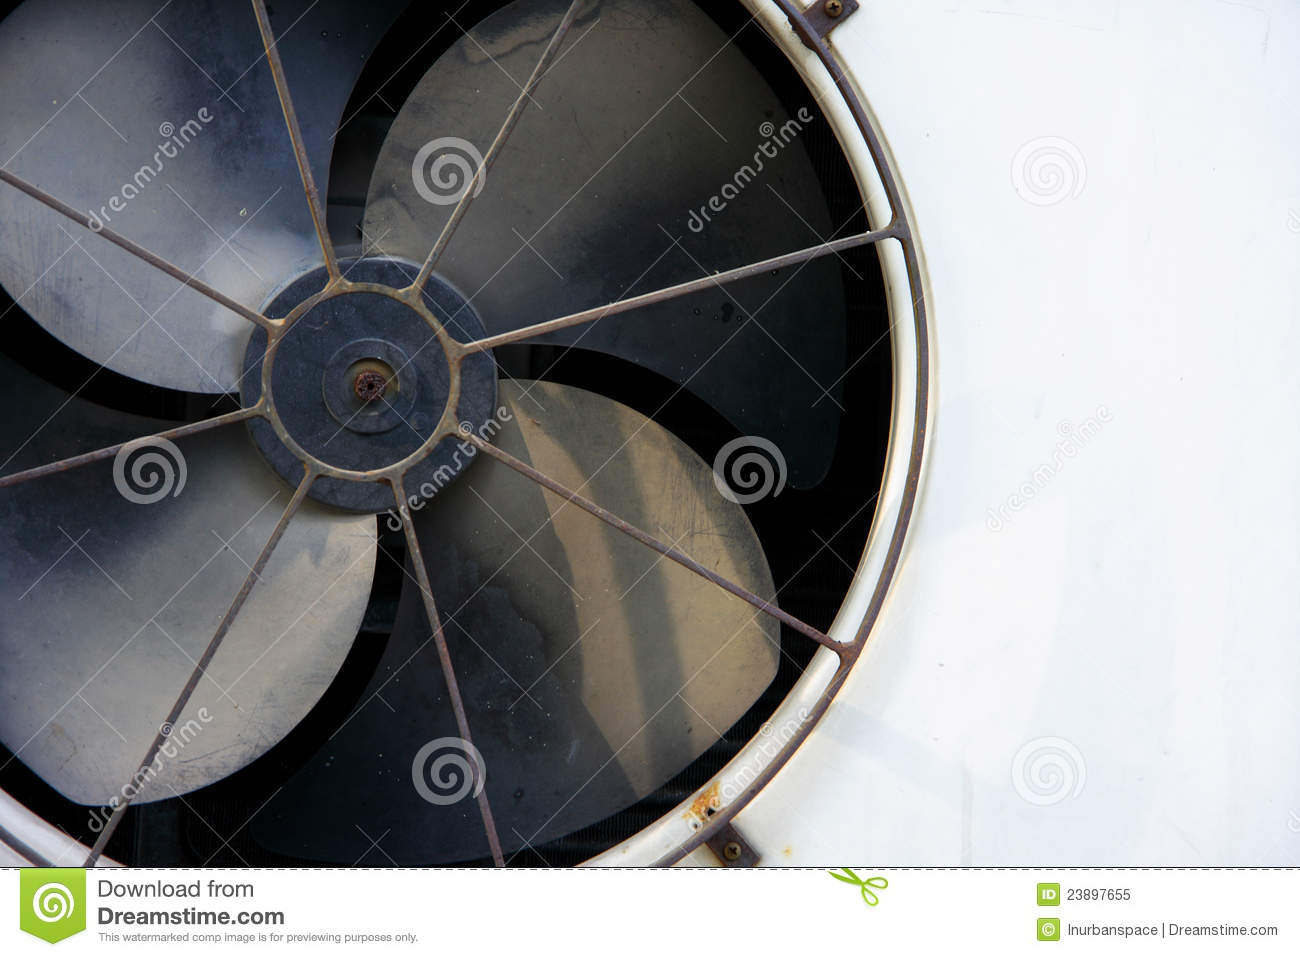 Compressed Air Blades : Fan blade of compressor royalty free stock photo image